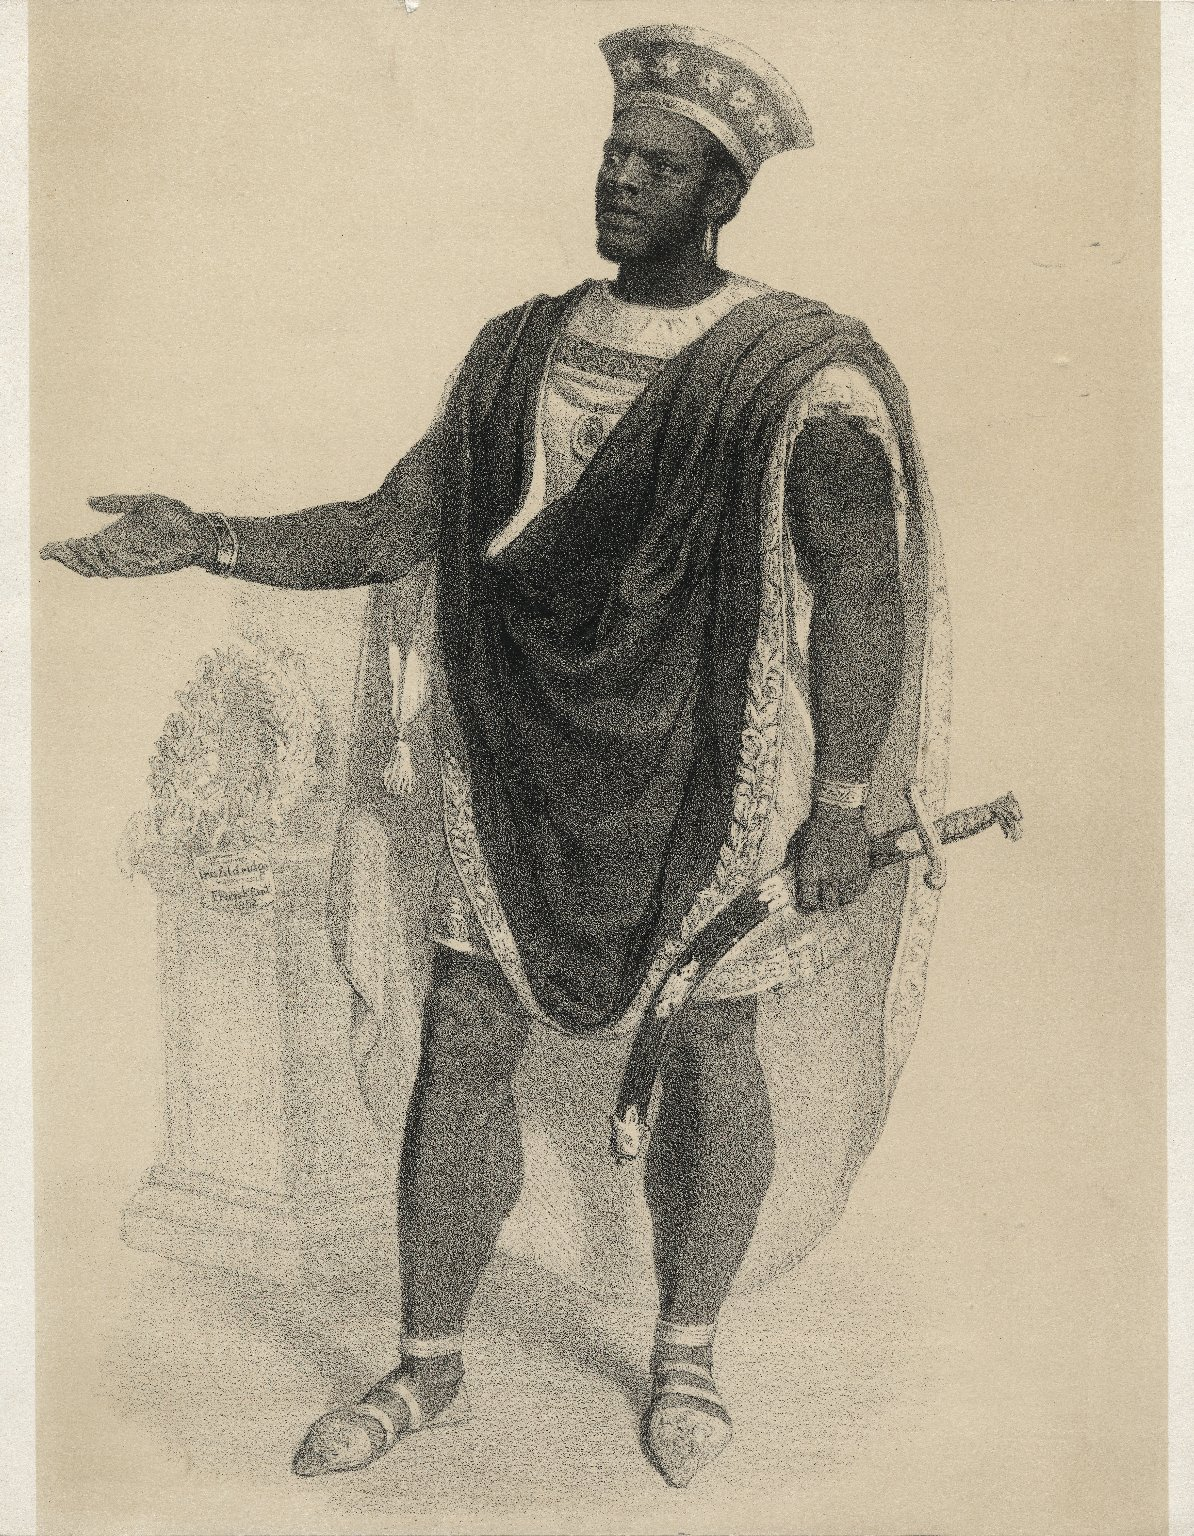 <b>Othello, 1854</b>     	</br>Ira Aldridge as Othello, Germany, 1854</br><br/><b>Source: </b><i>S. Buhler, Ira Aldridge also Othello (Call number: ART File A365.5 no.4), 1854, Folger Digital Image Collection, University of Cincinnati Libraries Digital Collections, University of Cincinnati, http://digproj.libraries.uc.edu:8180/luna/servlet/s/pyj248</i>